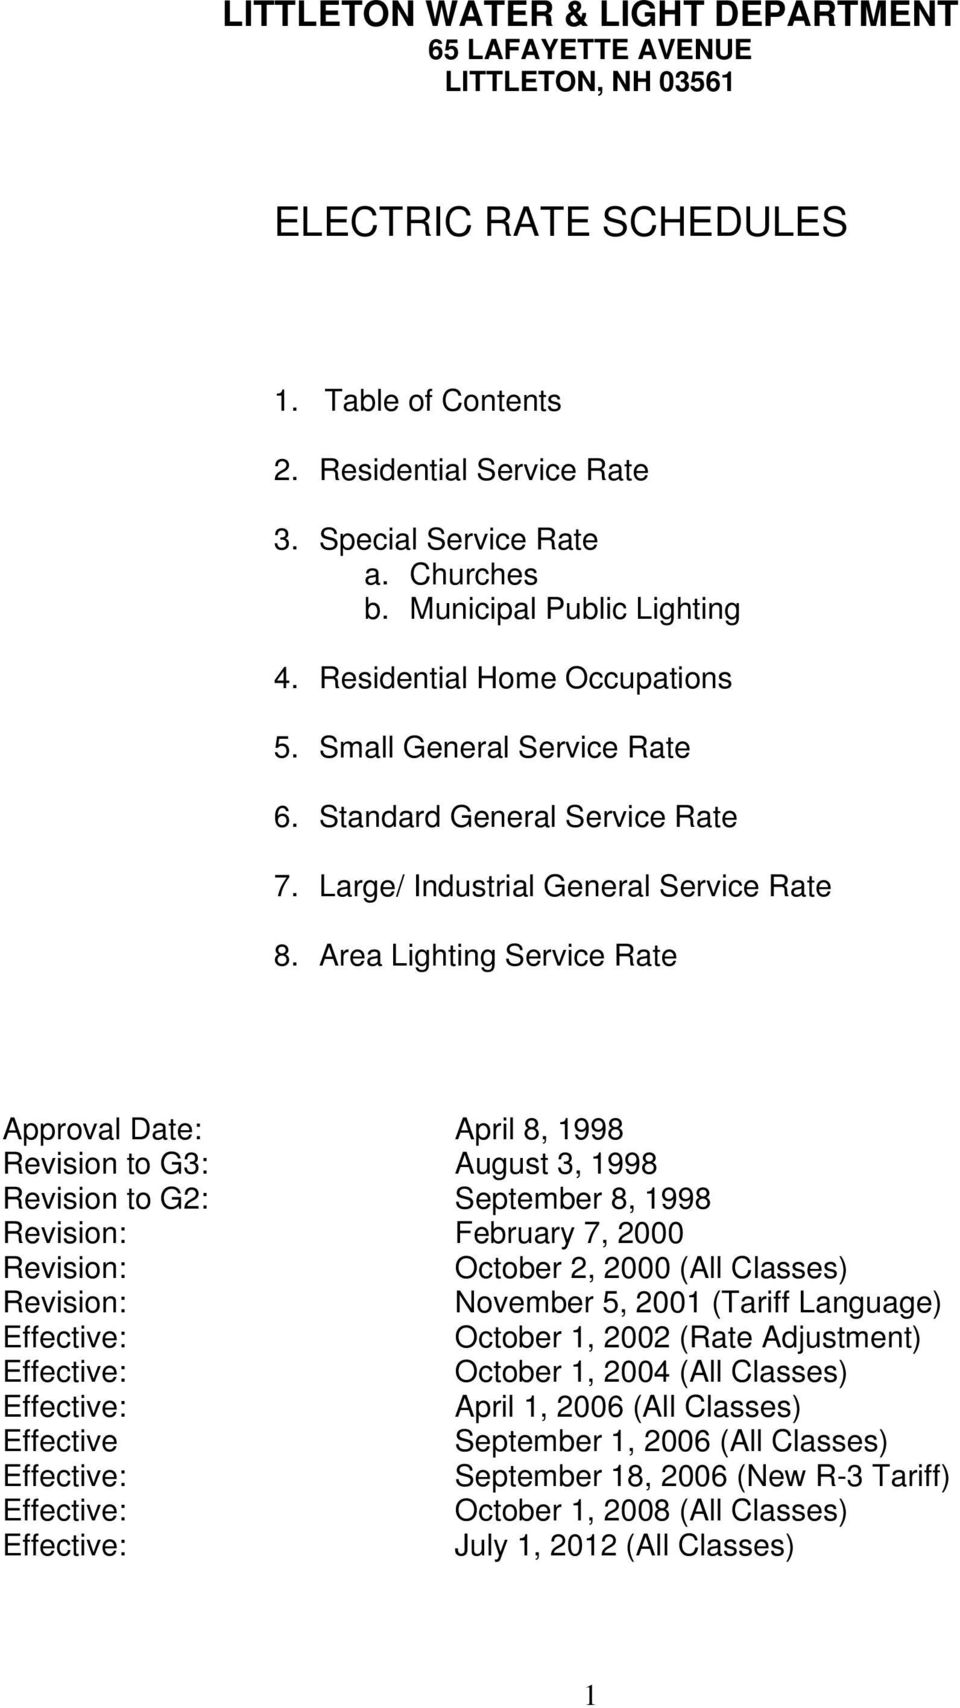 Area Lighting Service Rate Approval Date: April 8, 1998 Revision to G3: August 3, 1998 Revision to G2: September 8, 1998 Revision: February 7, 2000 Revision: October 2, 2000 (All Classes) Revision: